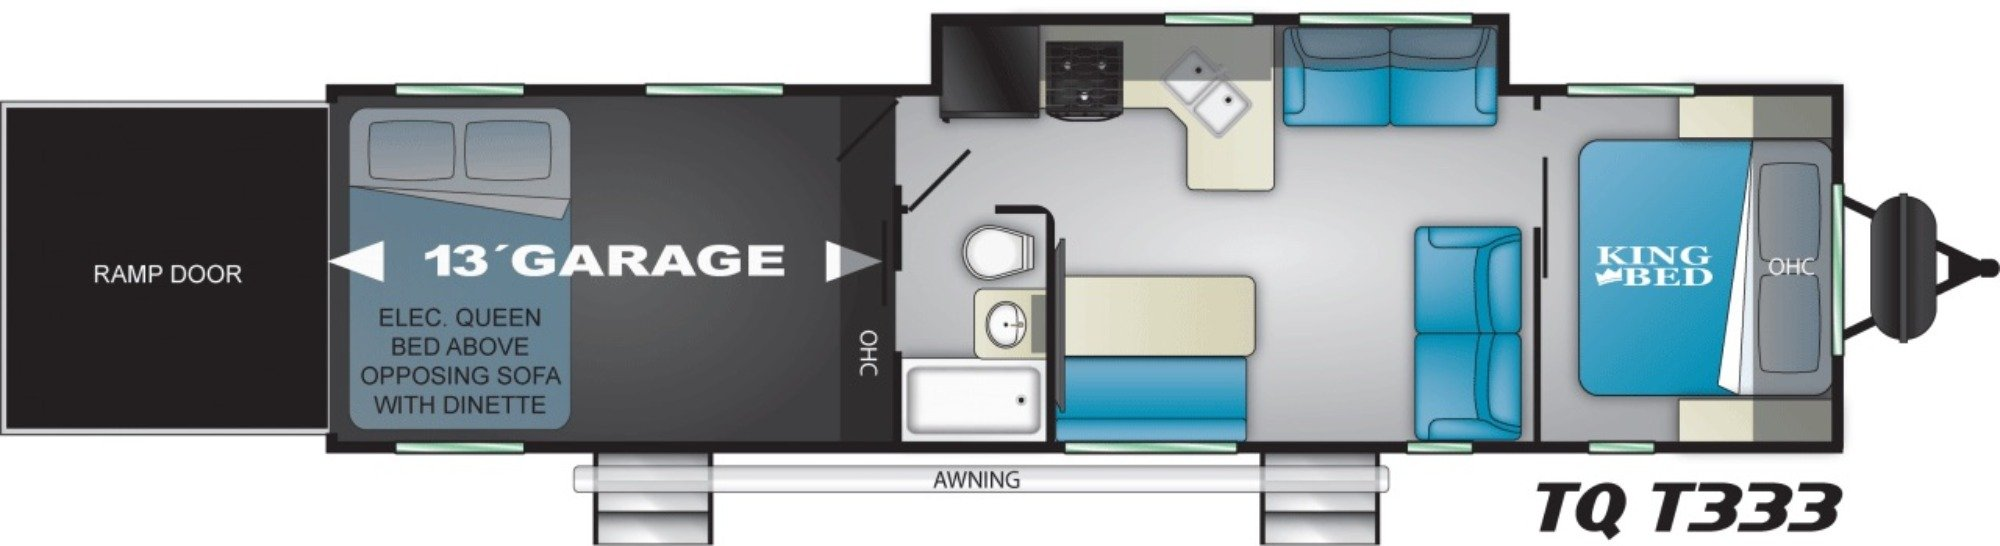 View Floor Plan for 2021 HEARTLAND TORQUE T333